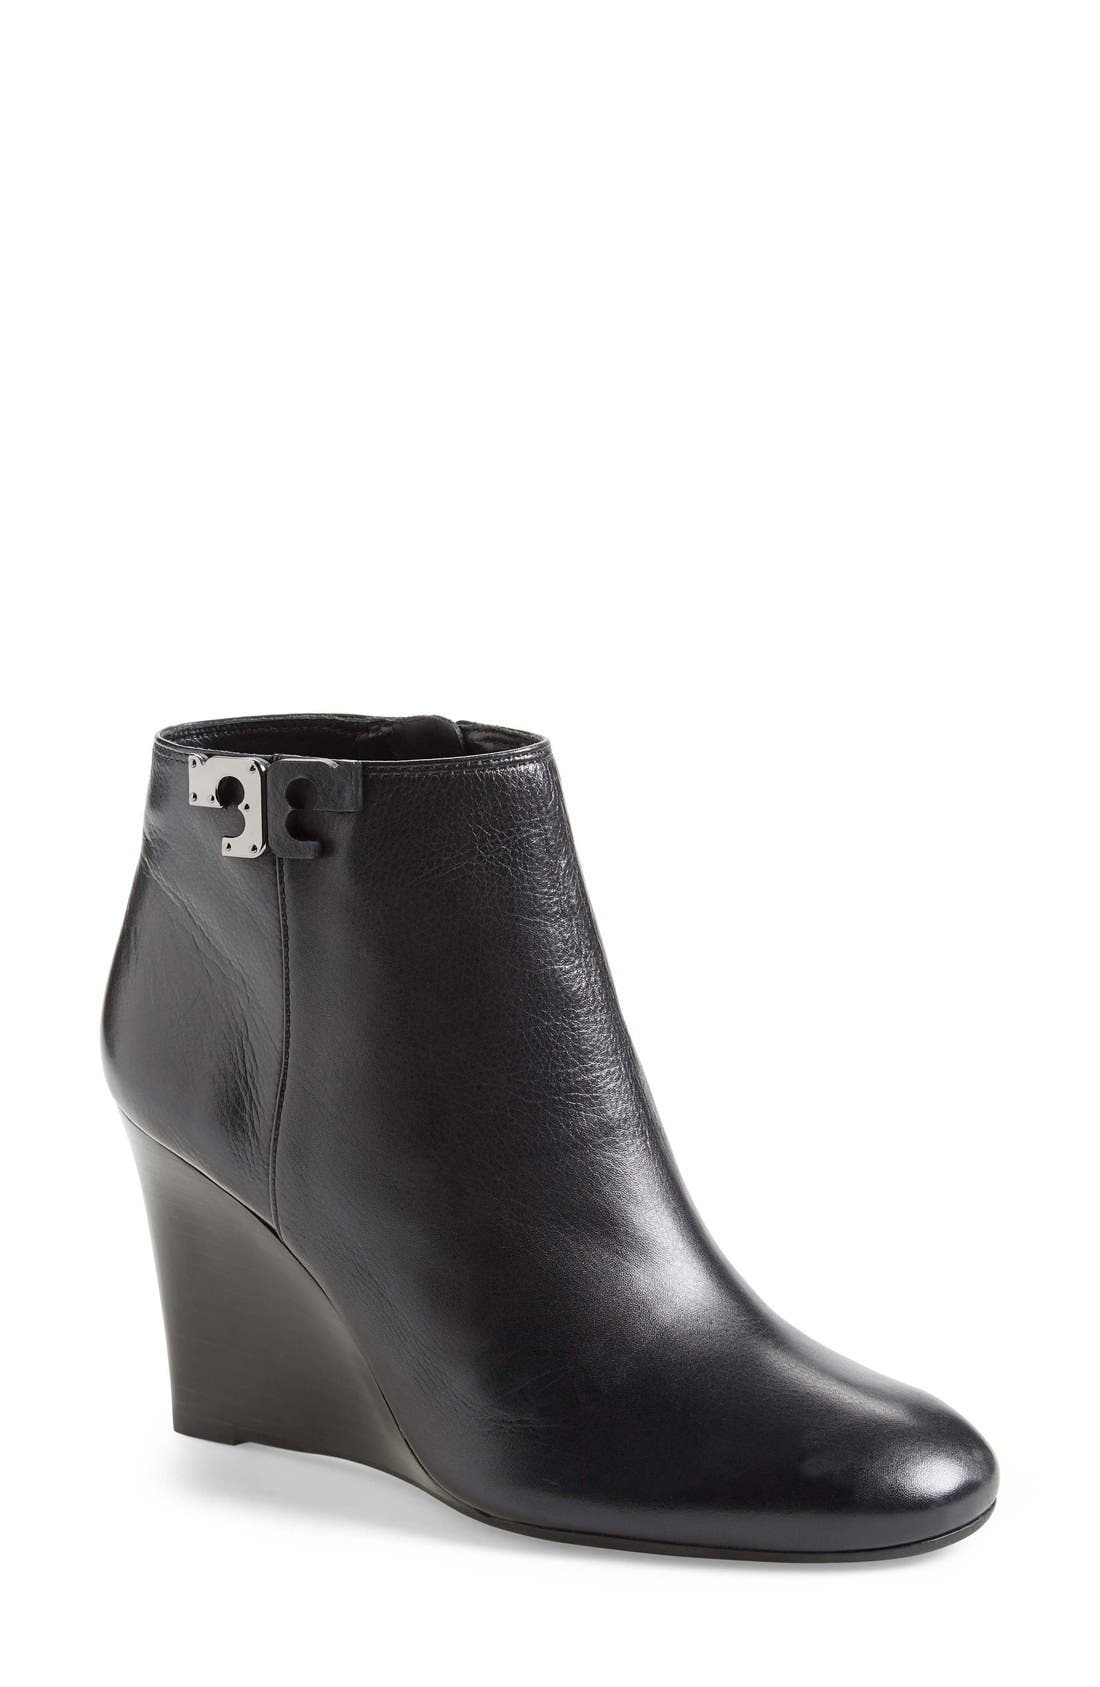 'Lowell' Wedge Bootie,                             Main thumbnail 1, color,                             Black Leather